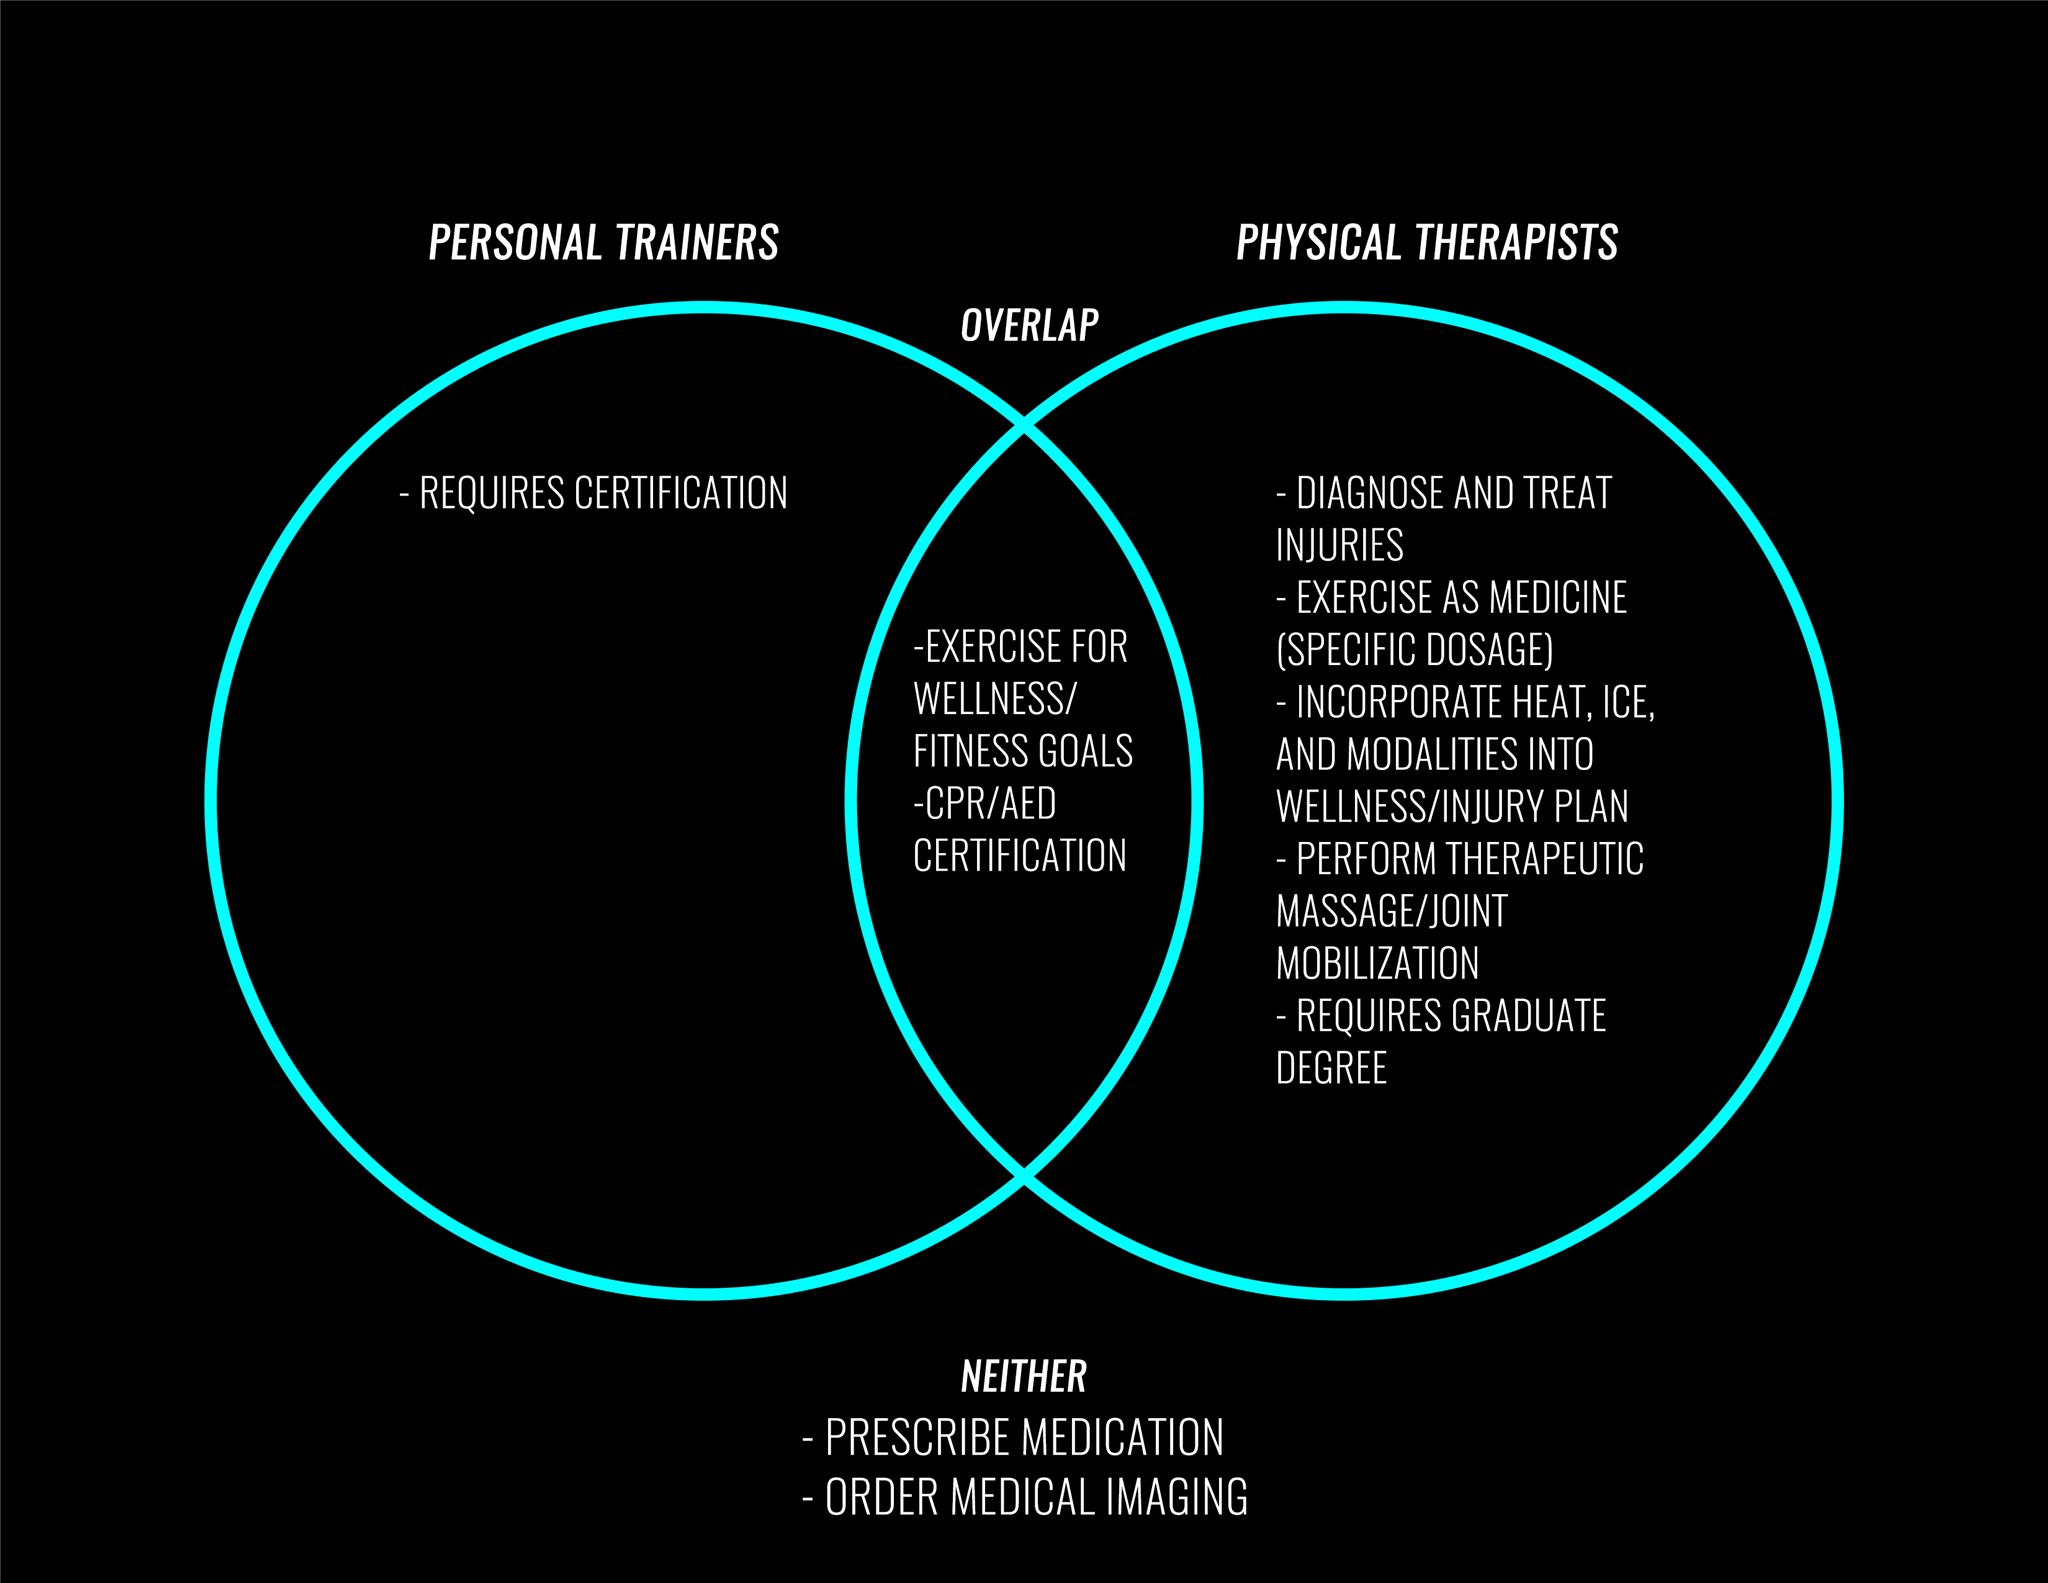 Drawing Distinctions The Differences Between Physical Therapy And Personal Training 1hp